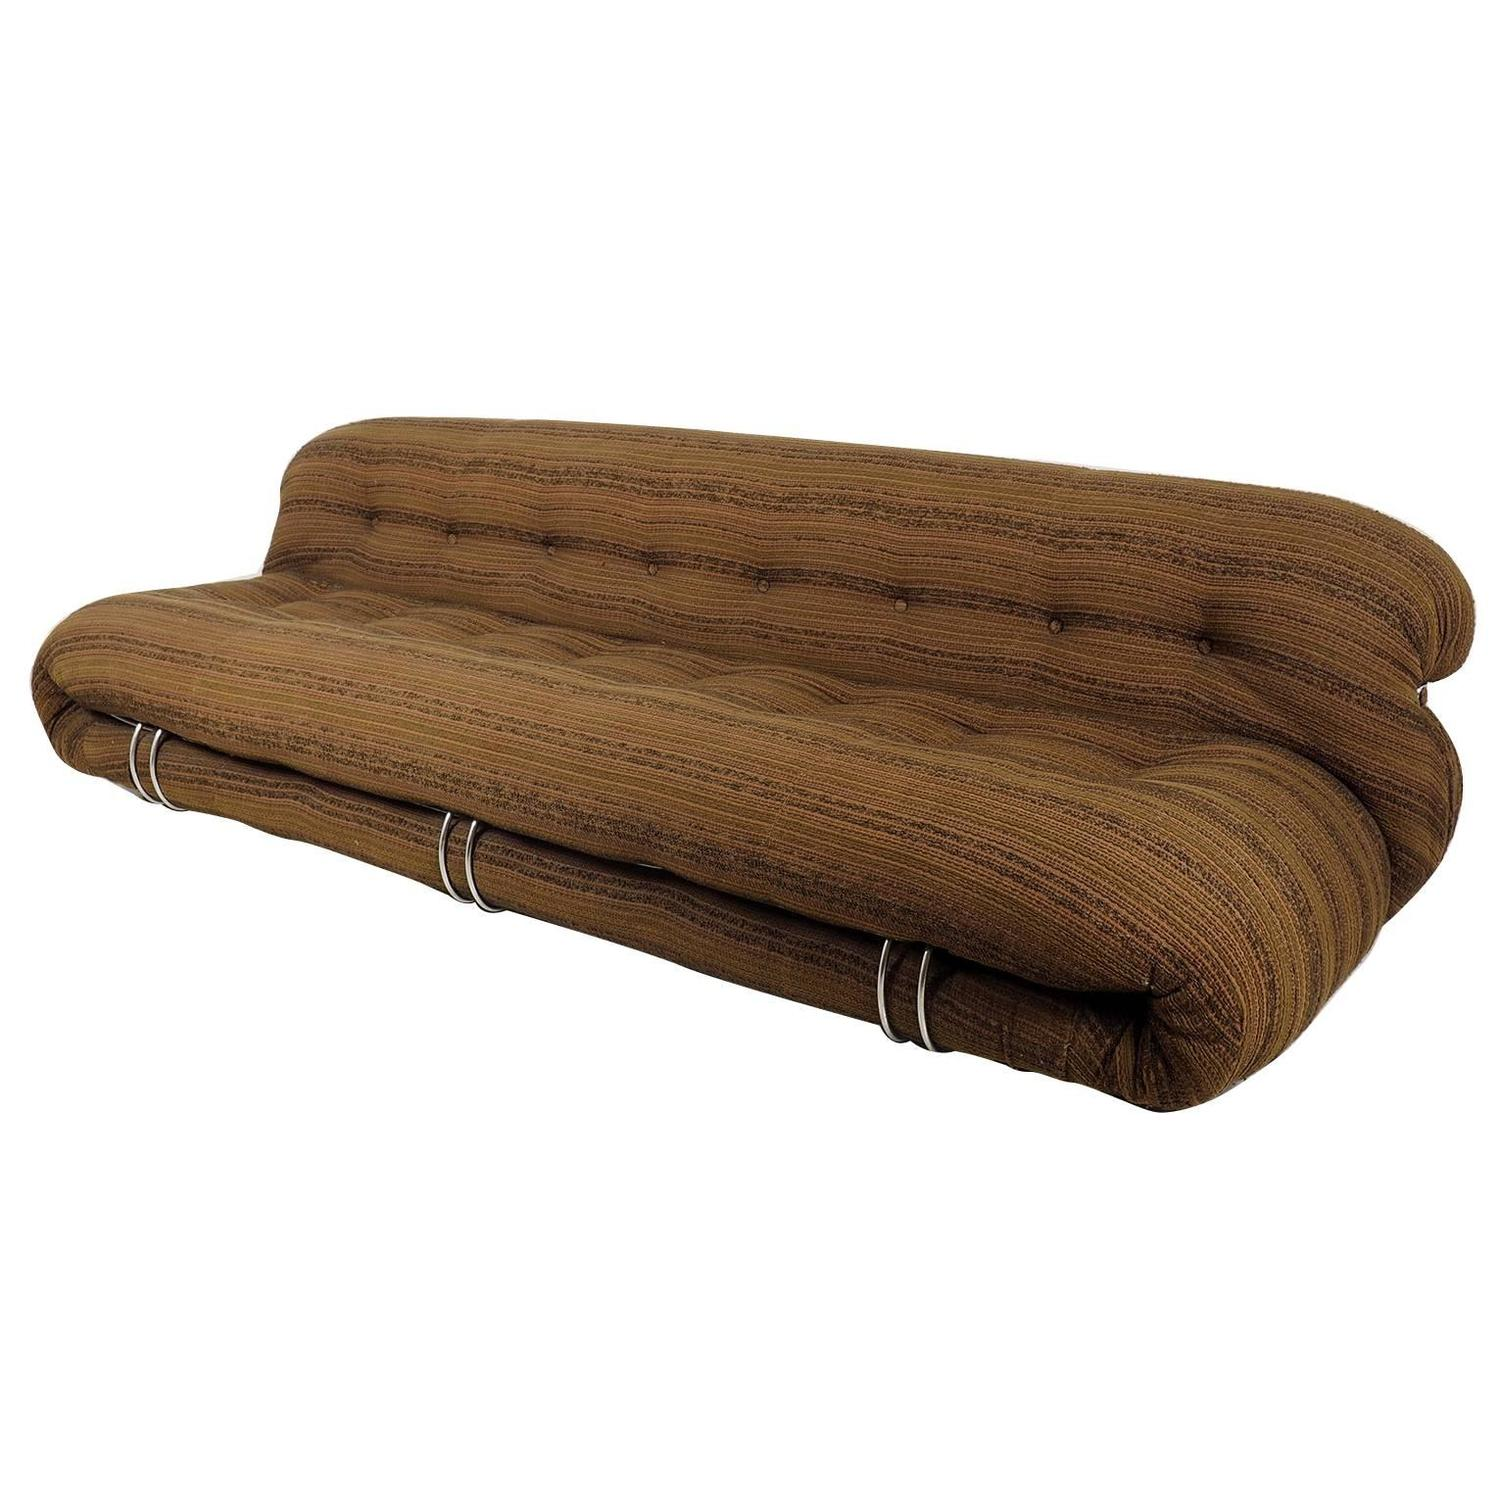 "Soriana"" Sofa by Tobia Scarpa for Cassina Milano 1969 For Sale"